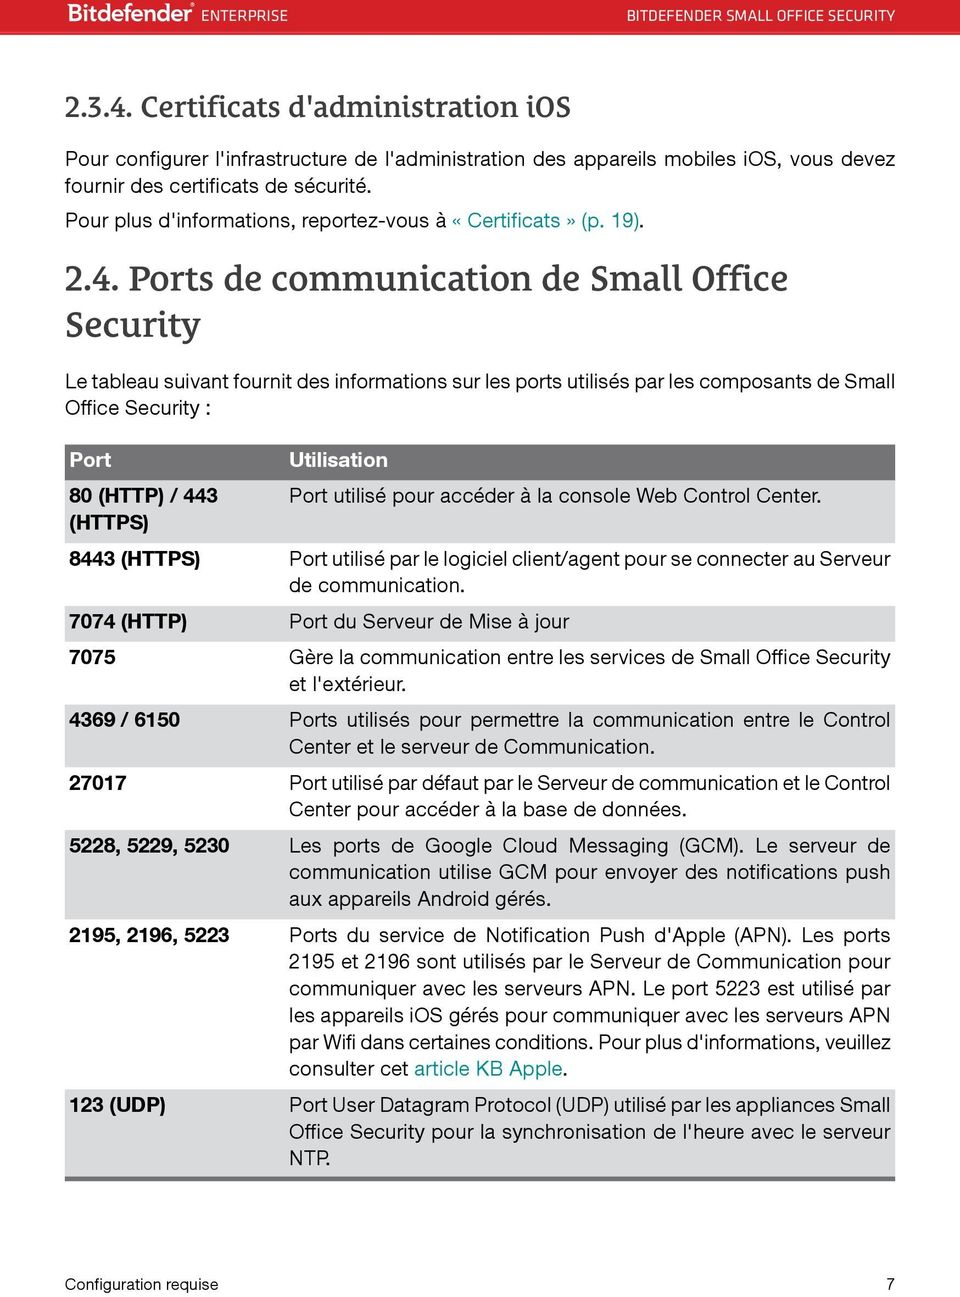 Ports de communication de Small Office Security Le tableau suivant fournit des informations sur les ports utilisés par les composants de Small Office Security : Port 80 (HTTP) / 443 (HTTPS) 8443